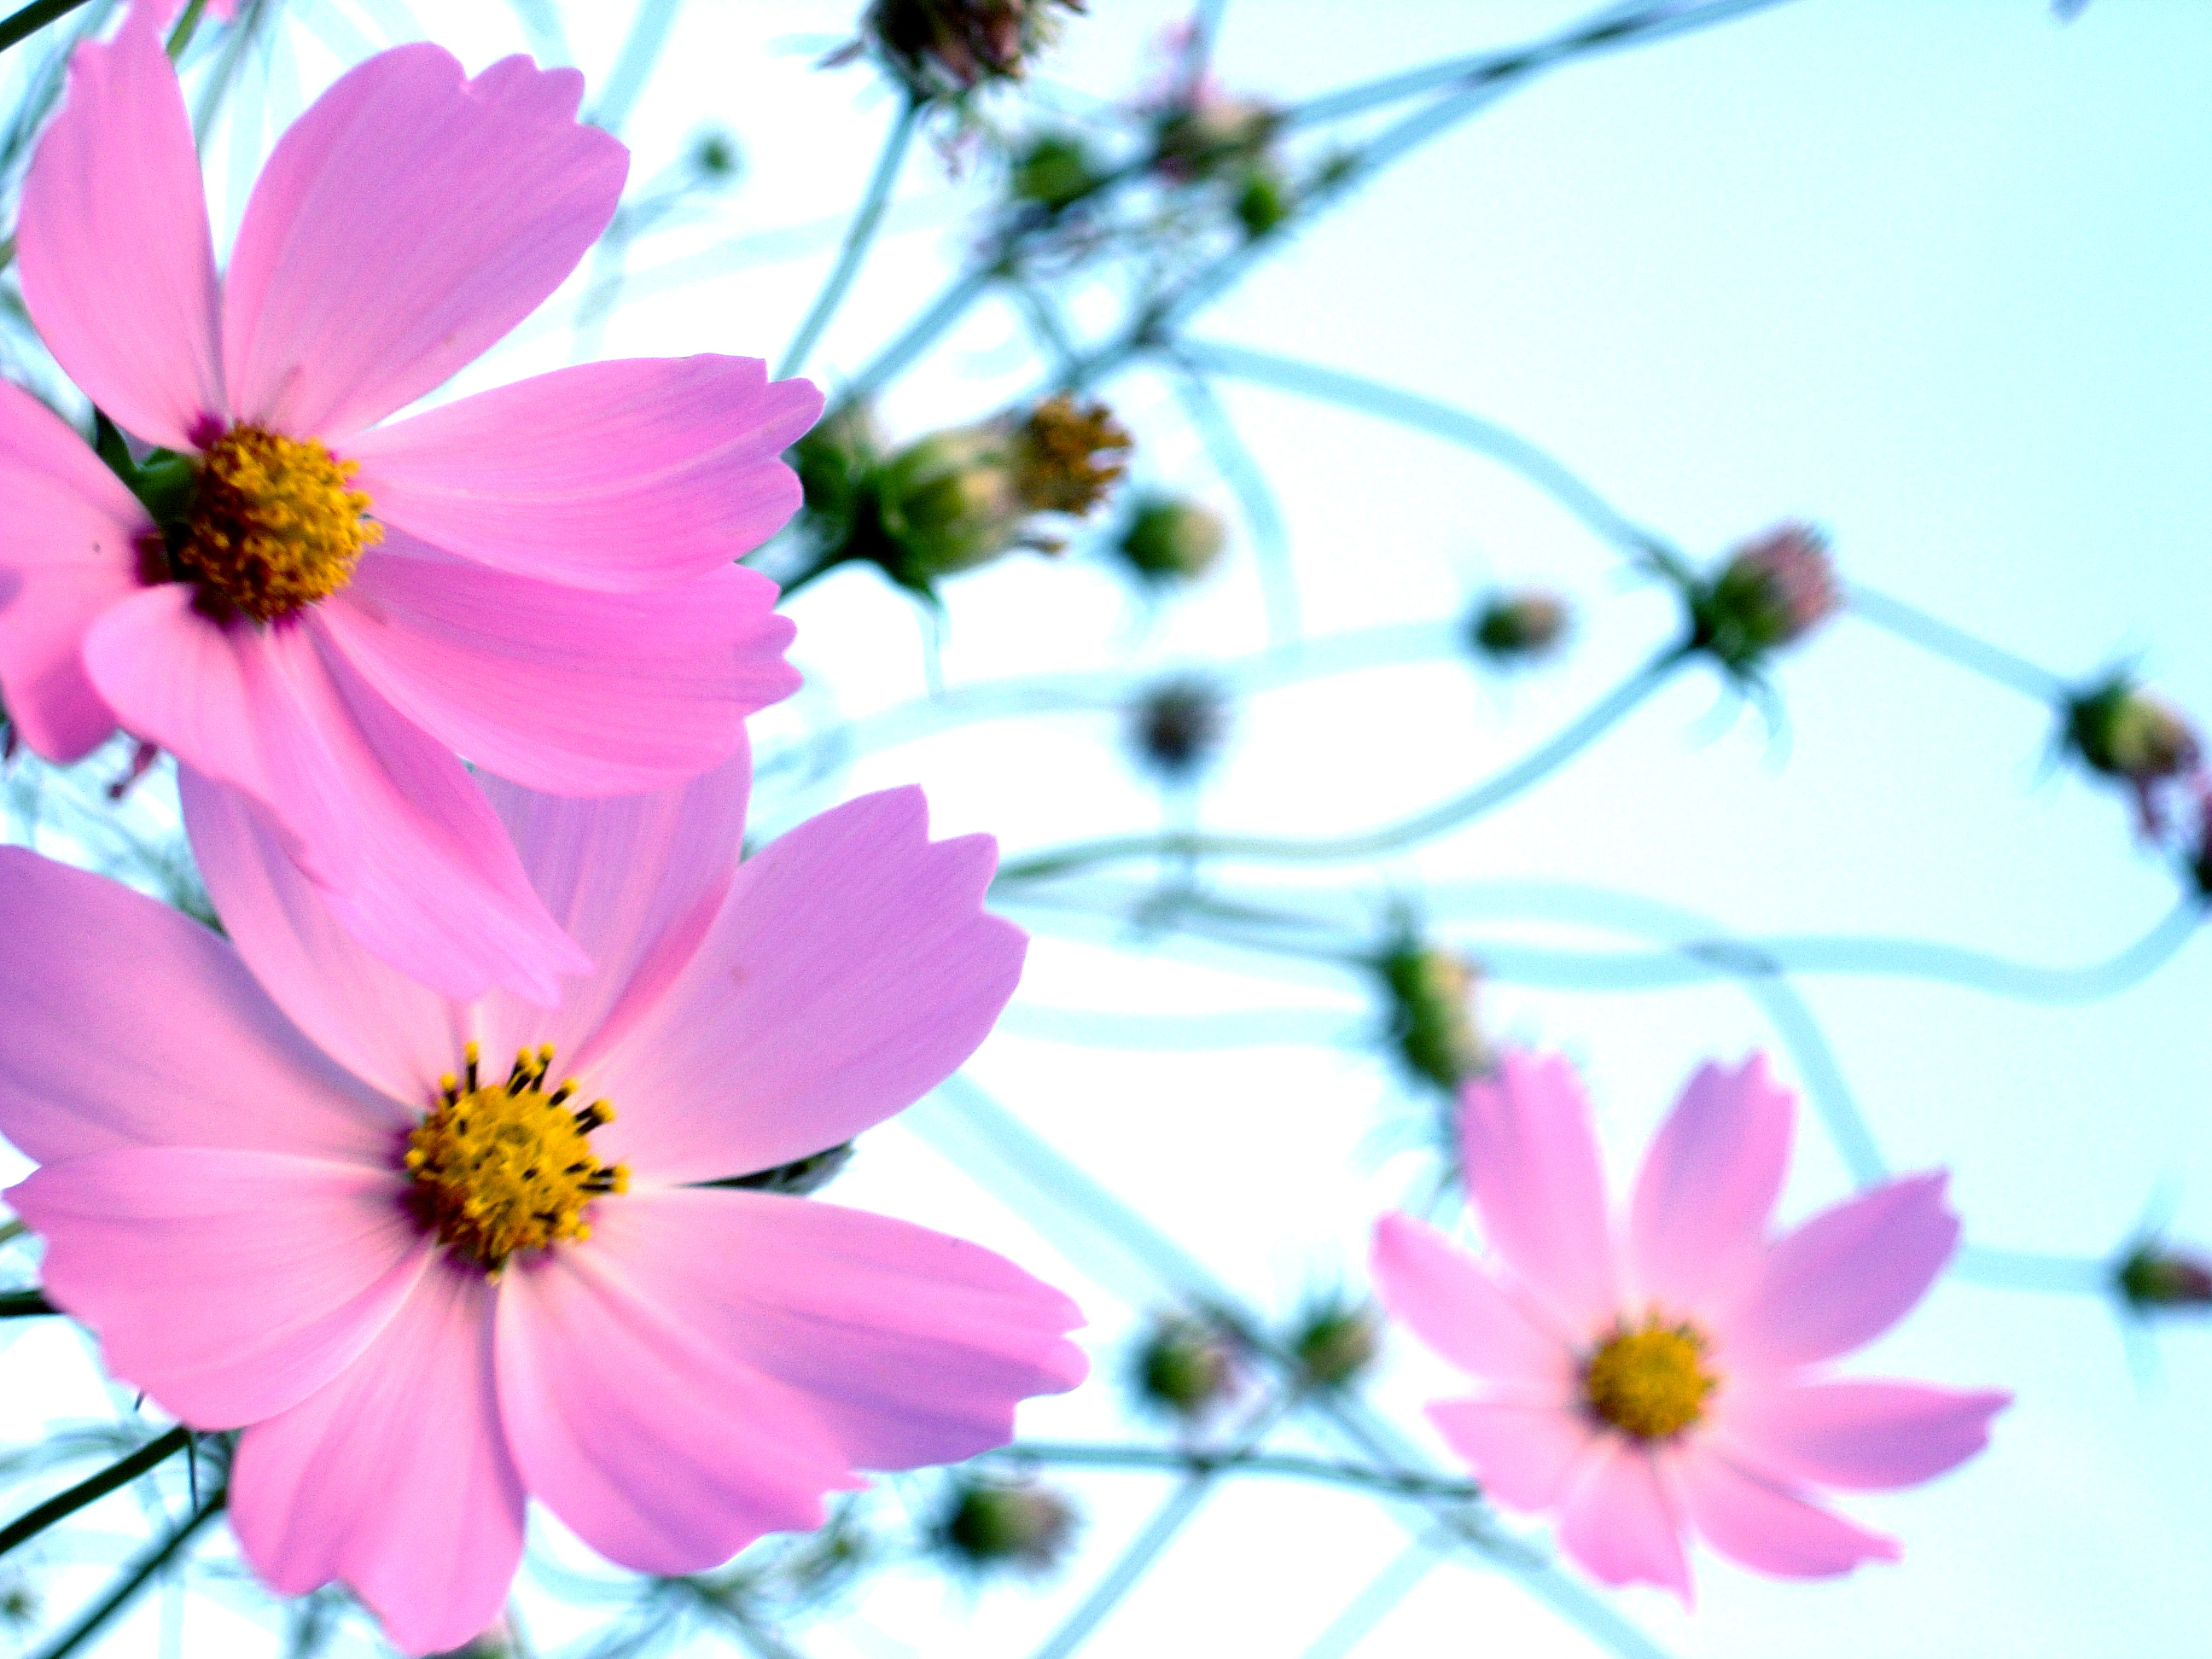 How to Grow Cosmos Flowers | Garden Guides